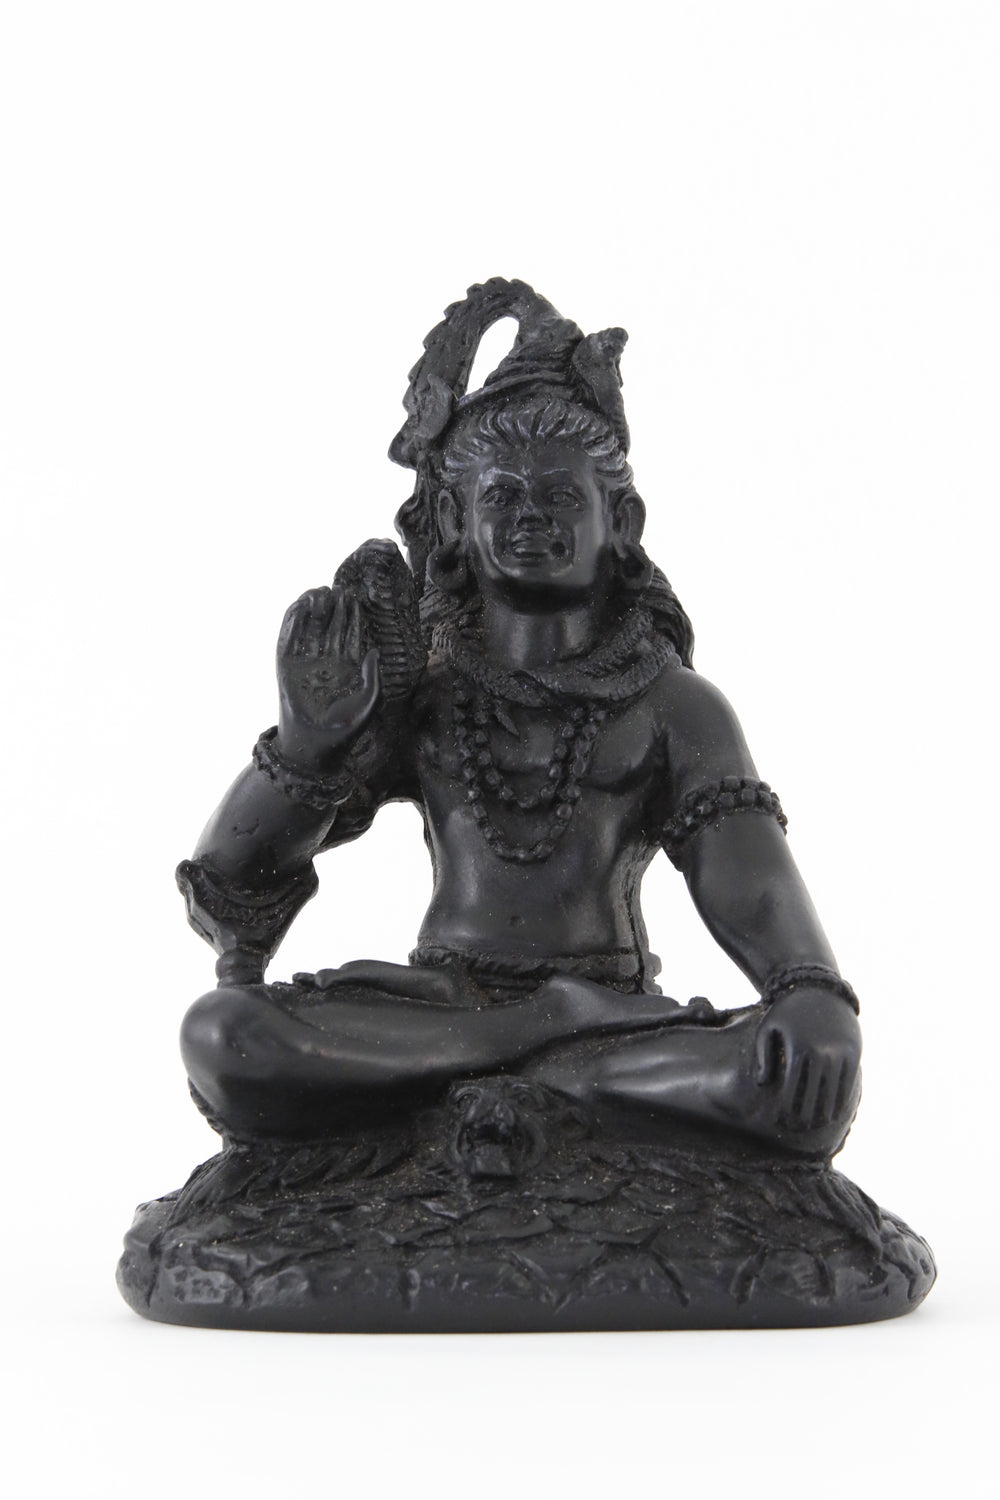 SHIVA BLESSING STATUE DARK FRONT VIEW